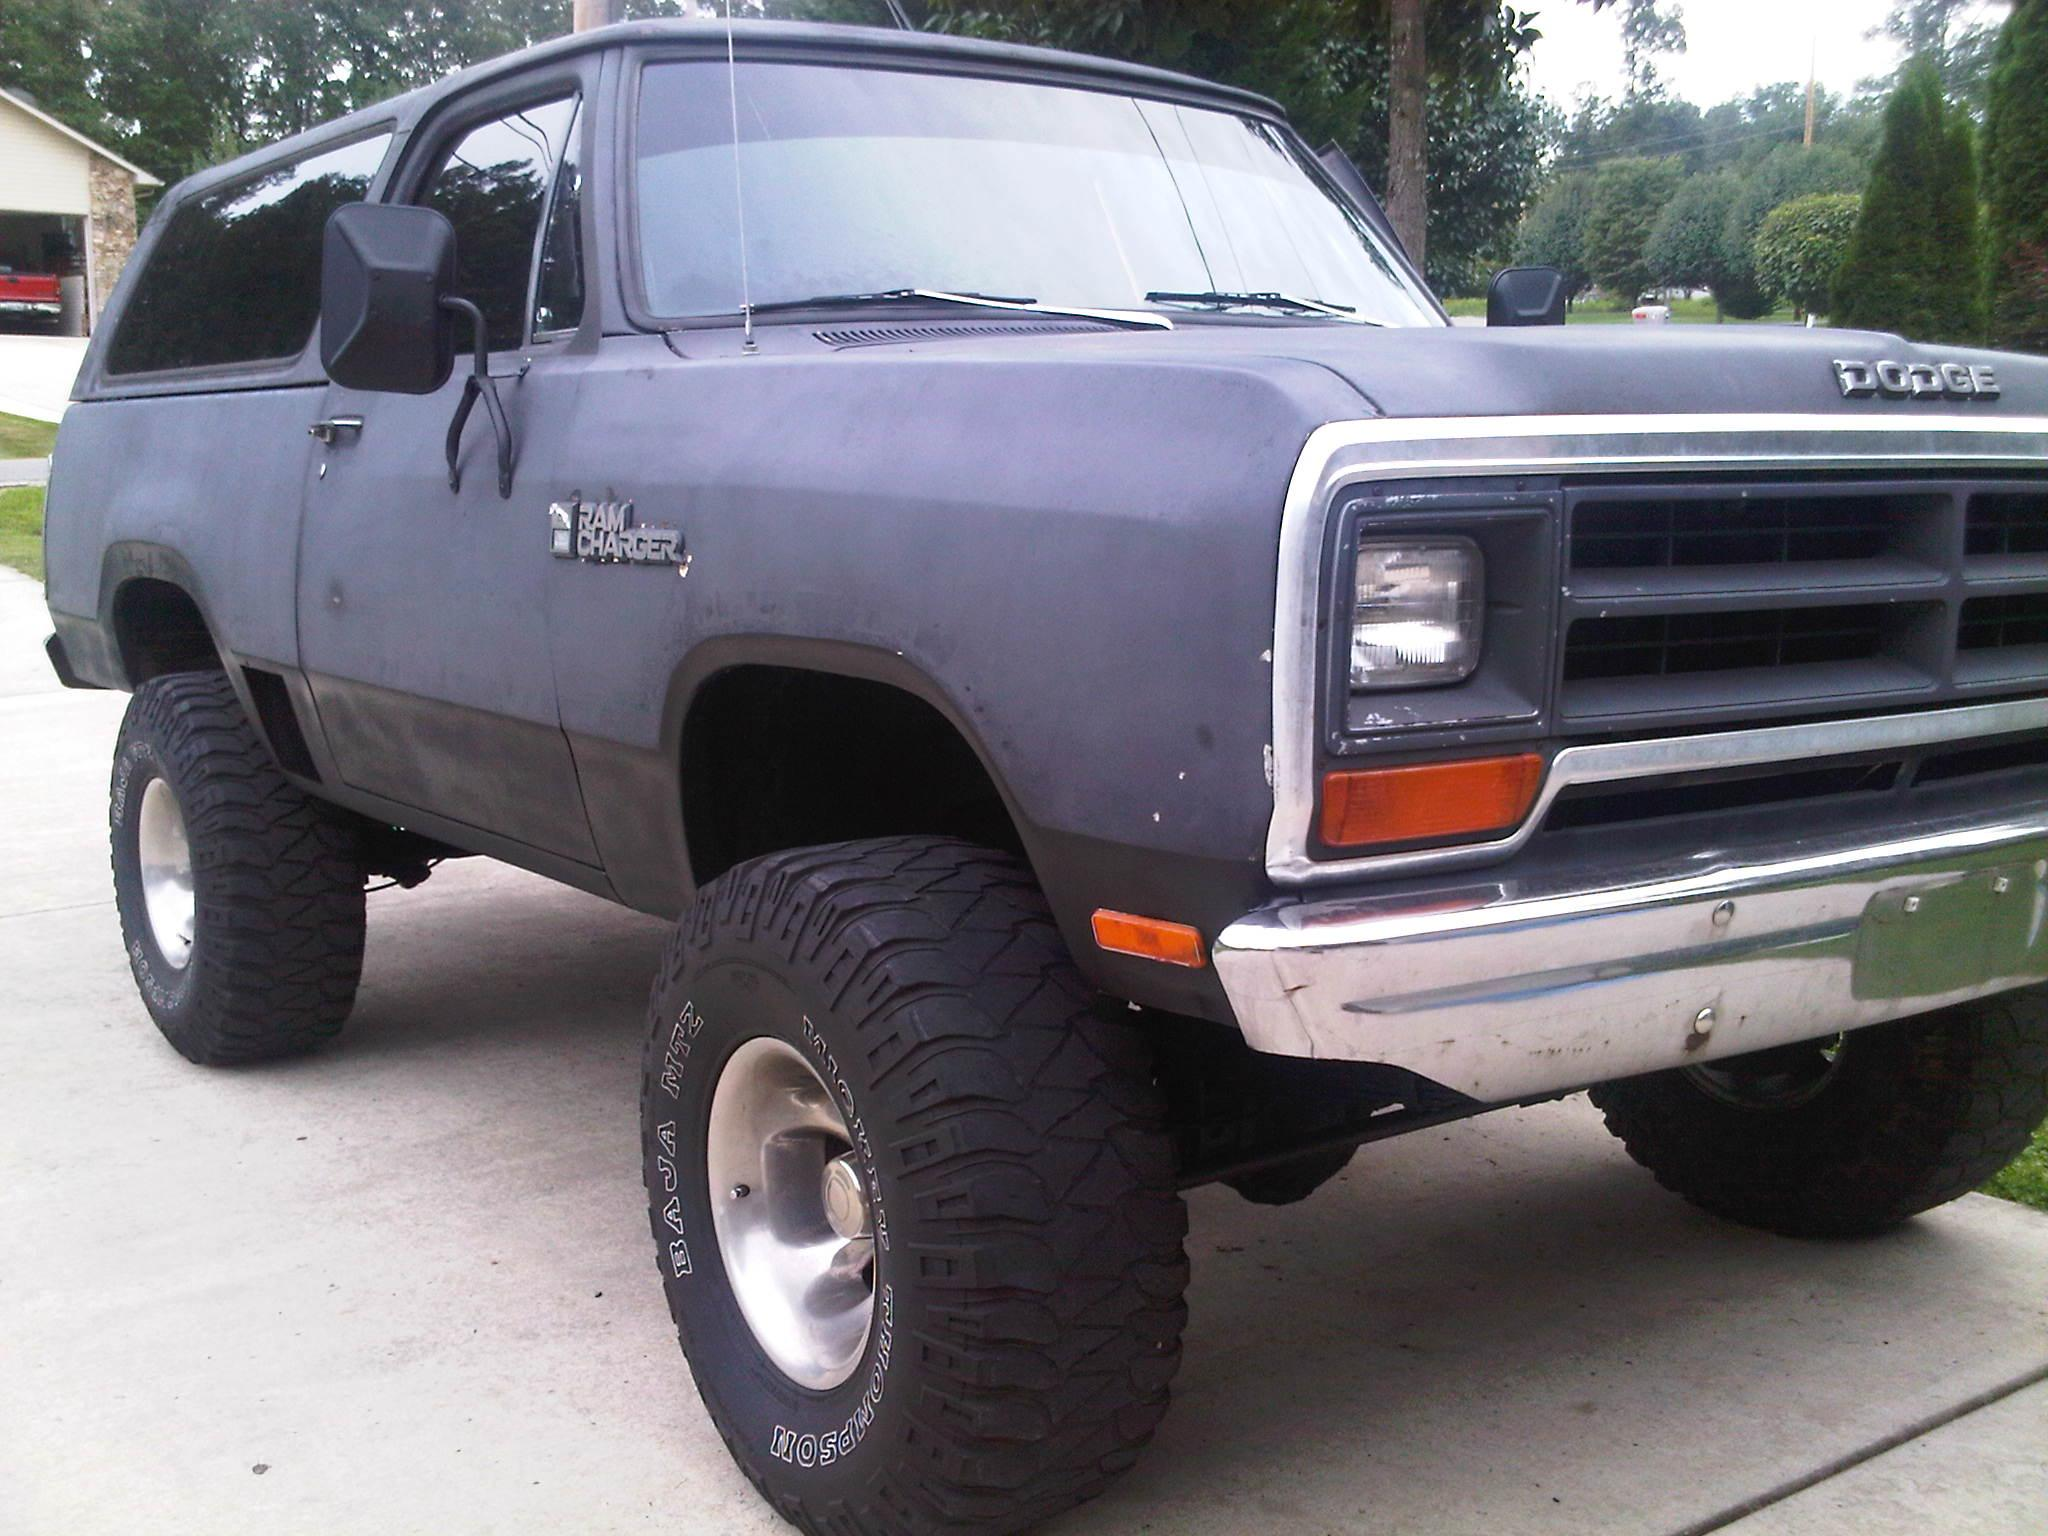 Moparmuscle_440 1978 dodge ramcharger